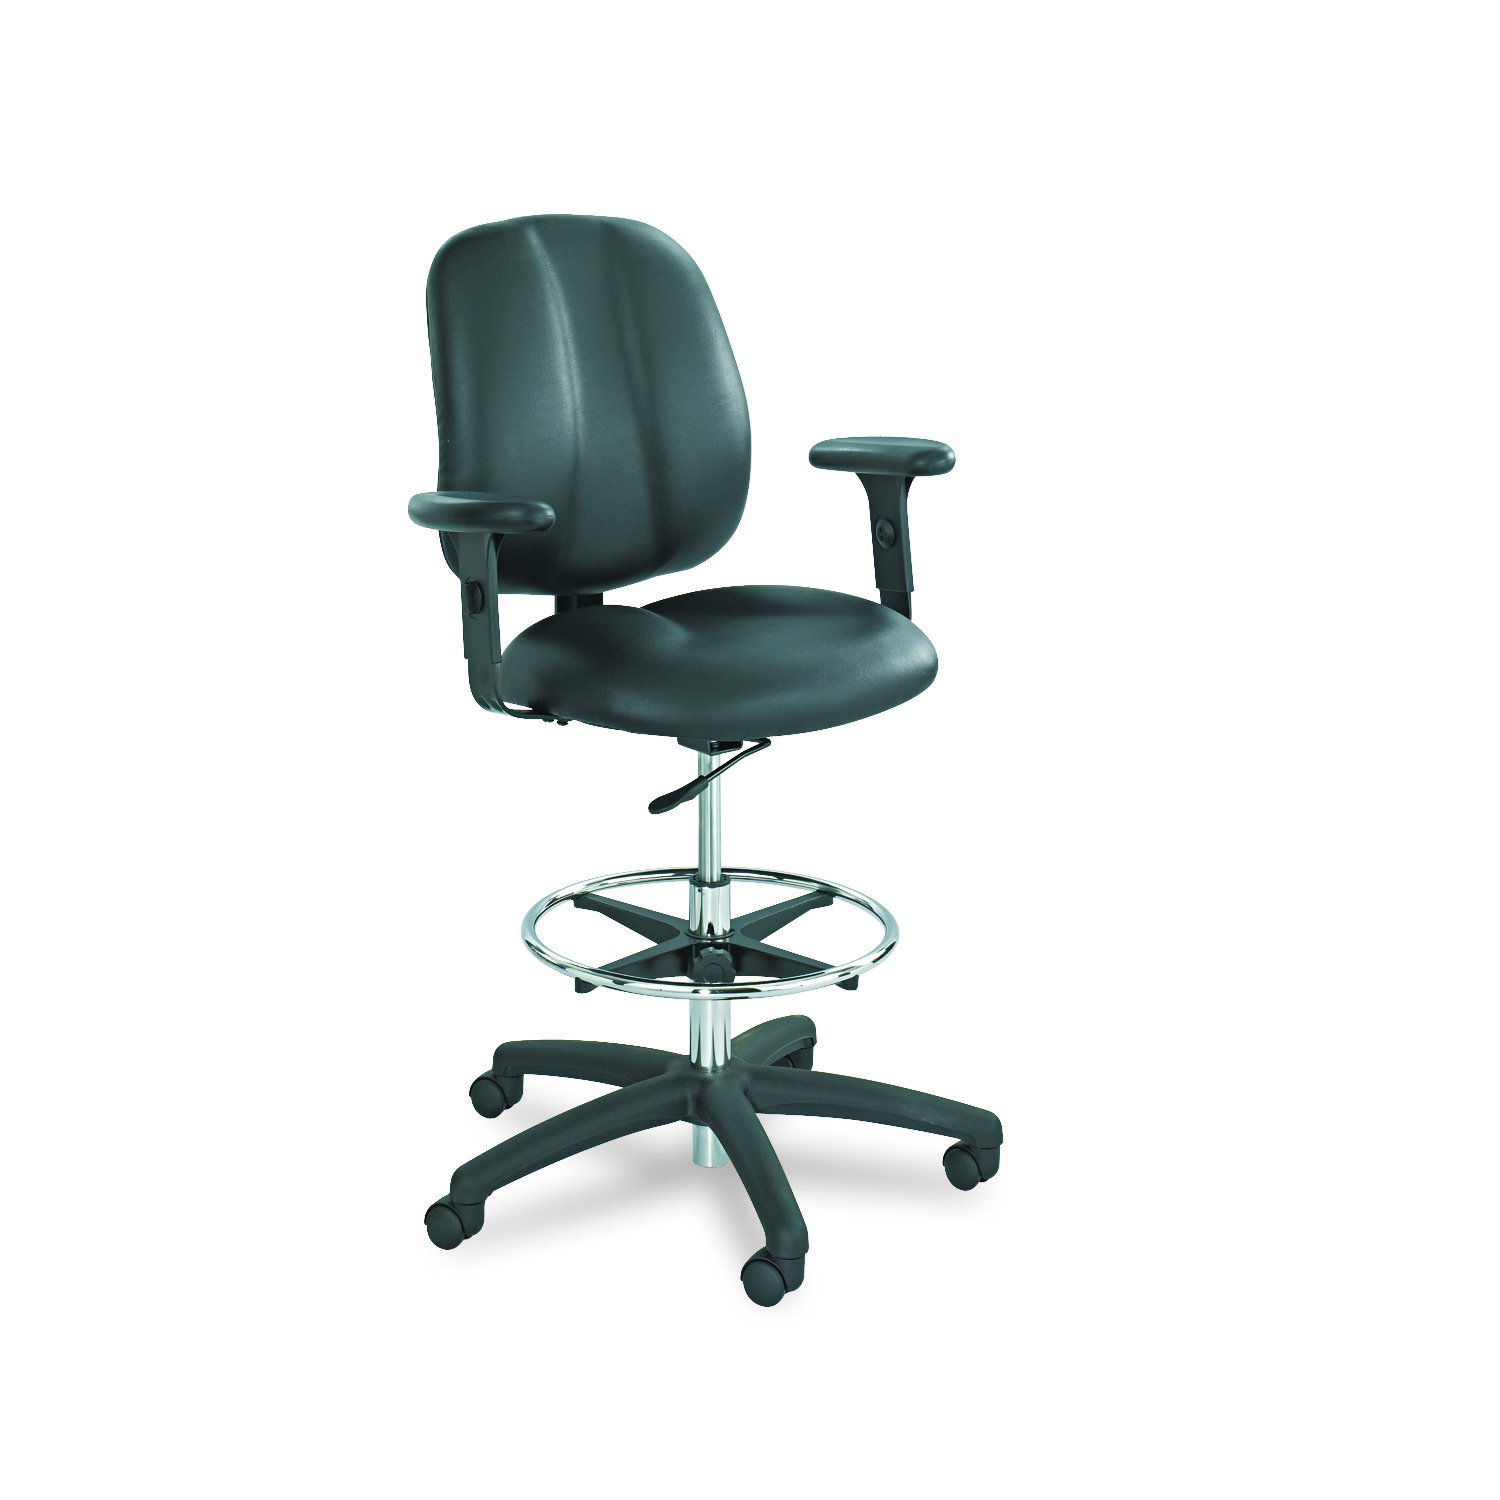 Safco Products 6689BL Adjustable T-Pad Arm Set for use with Apprentice II Extended Height Chair, sold separately, Black by Safco